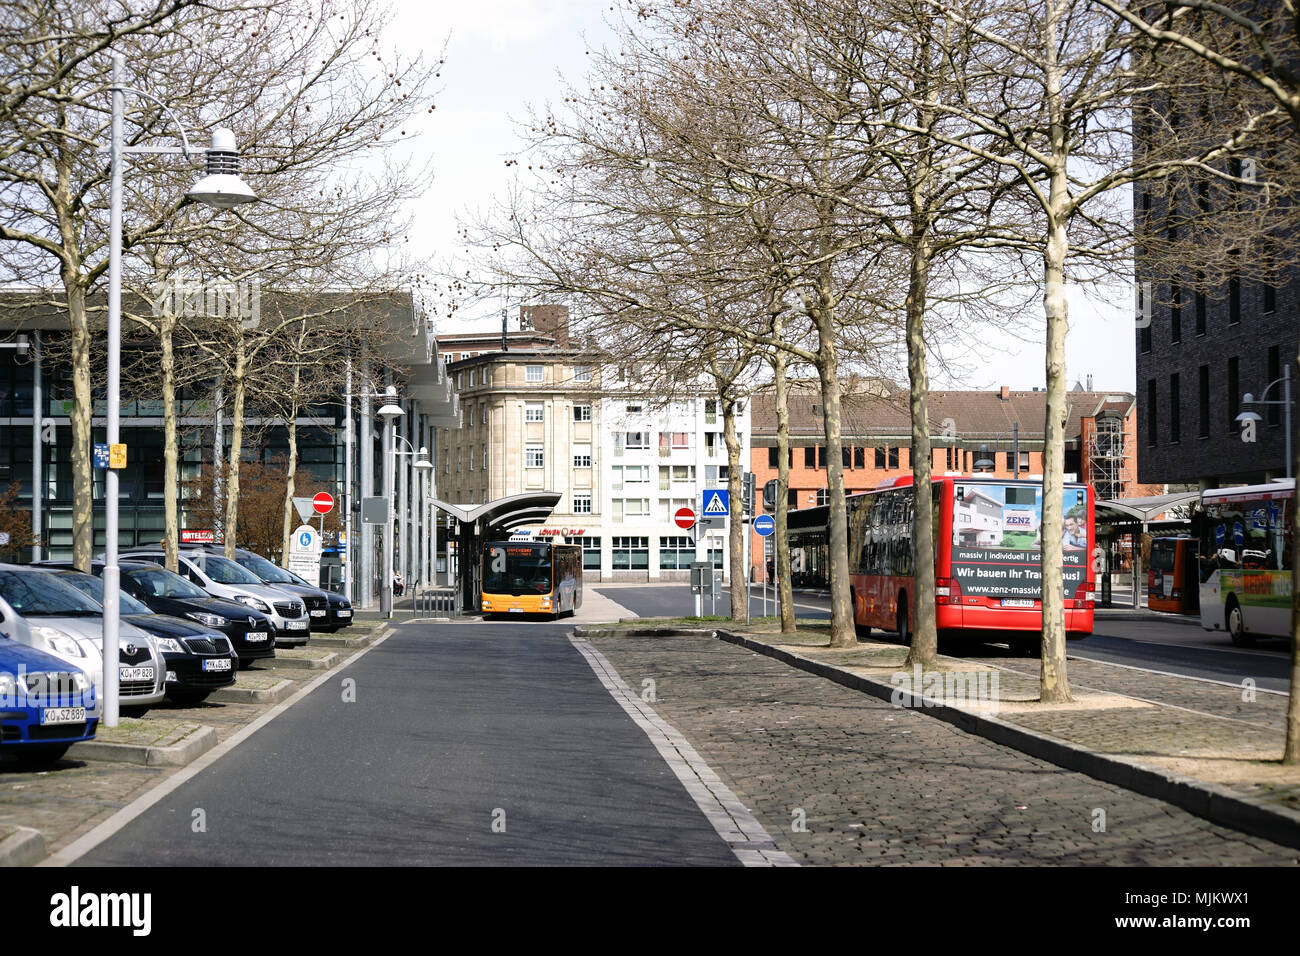 main train station forecourt stock photos main train station forecourt stock images alamy. Black Bedroom Furniture Sets. Home Design Ideas